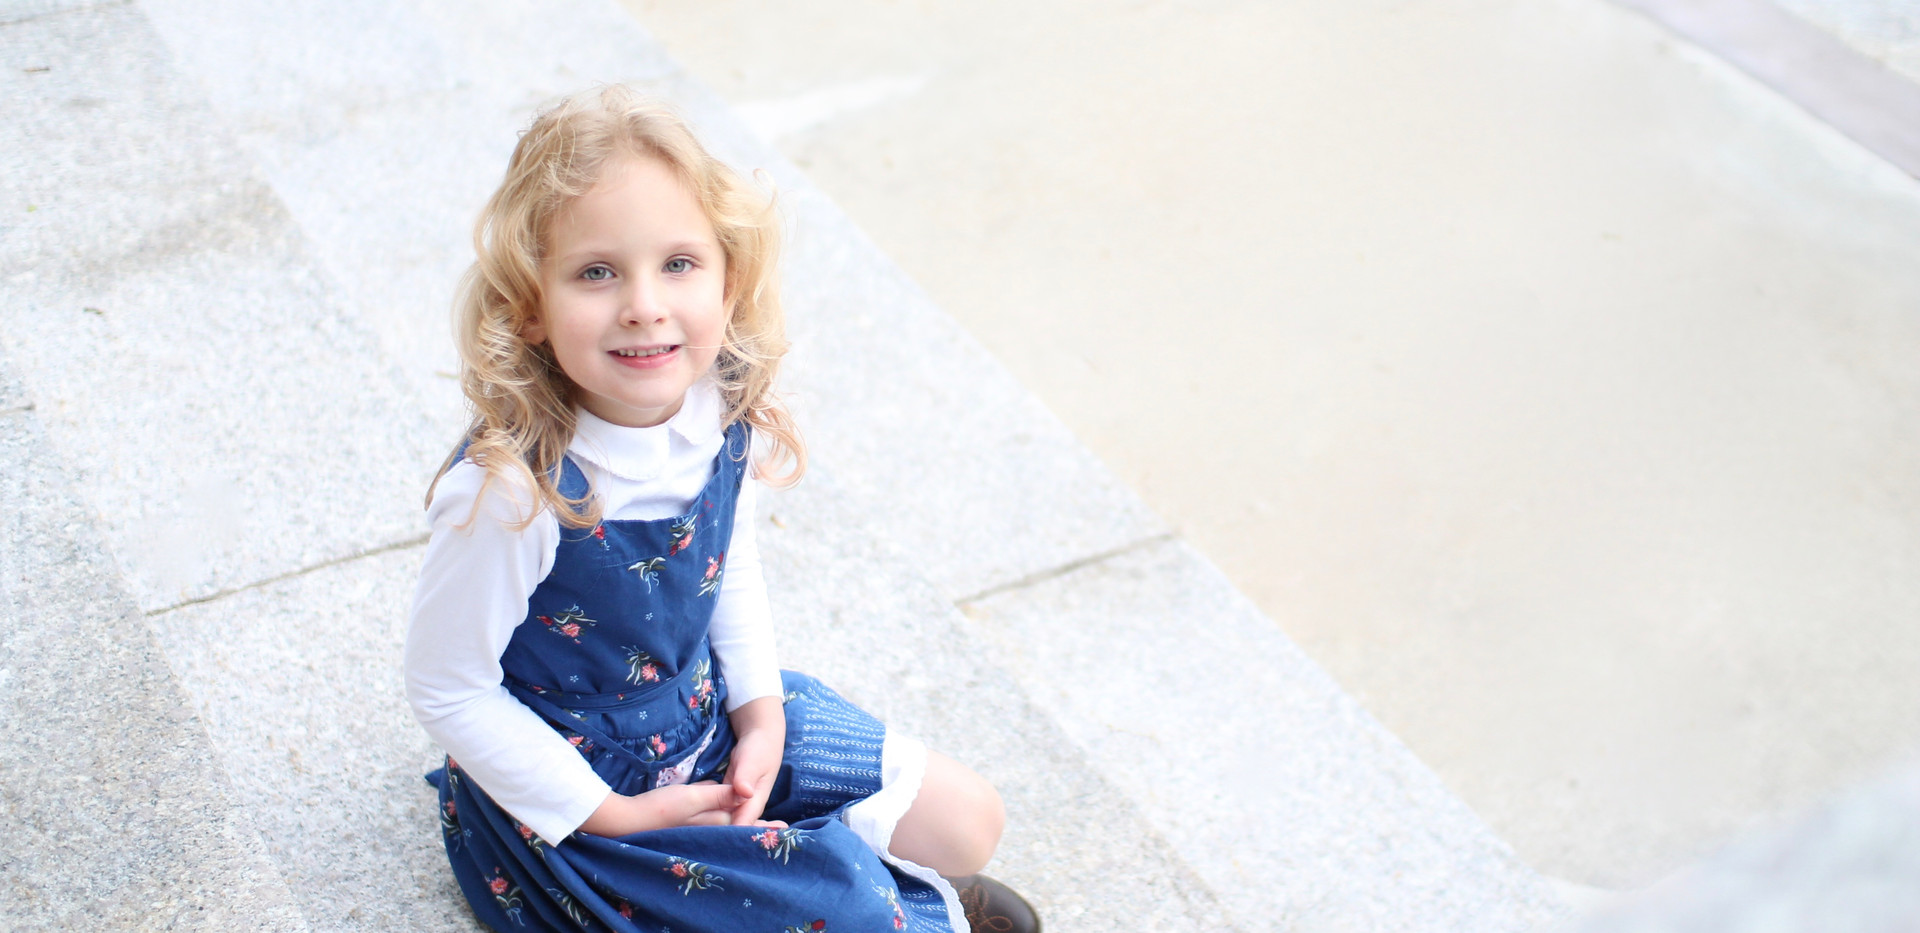 photographer Chattanooga, girl smiling in blue dress